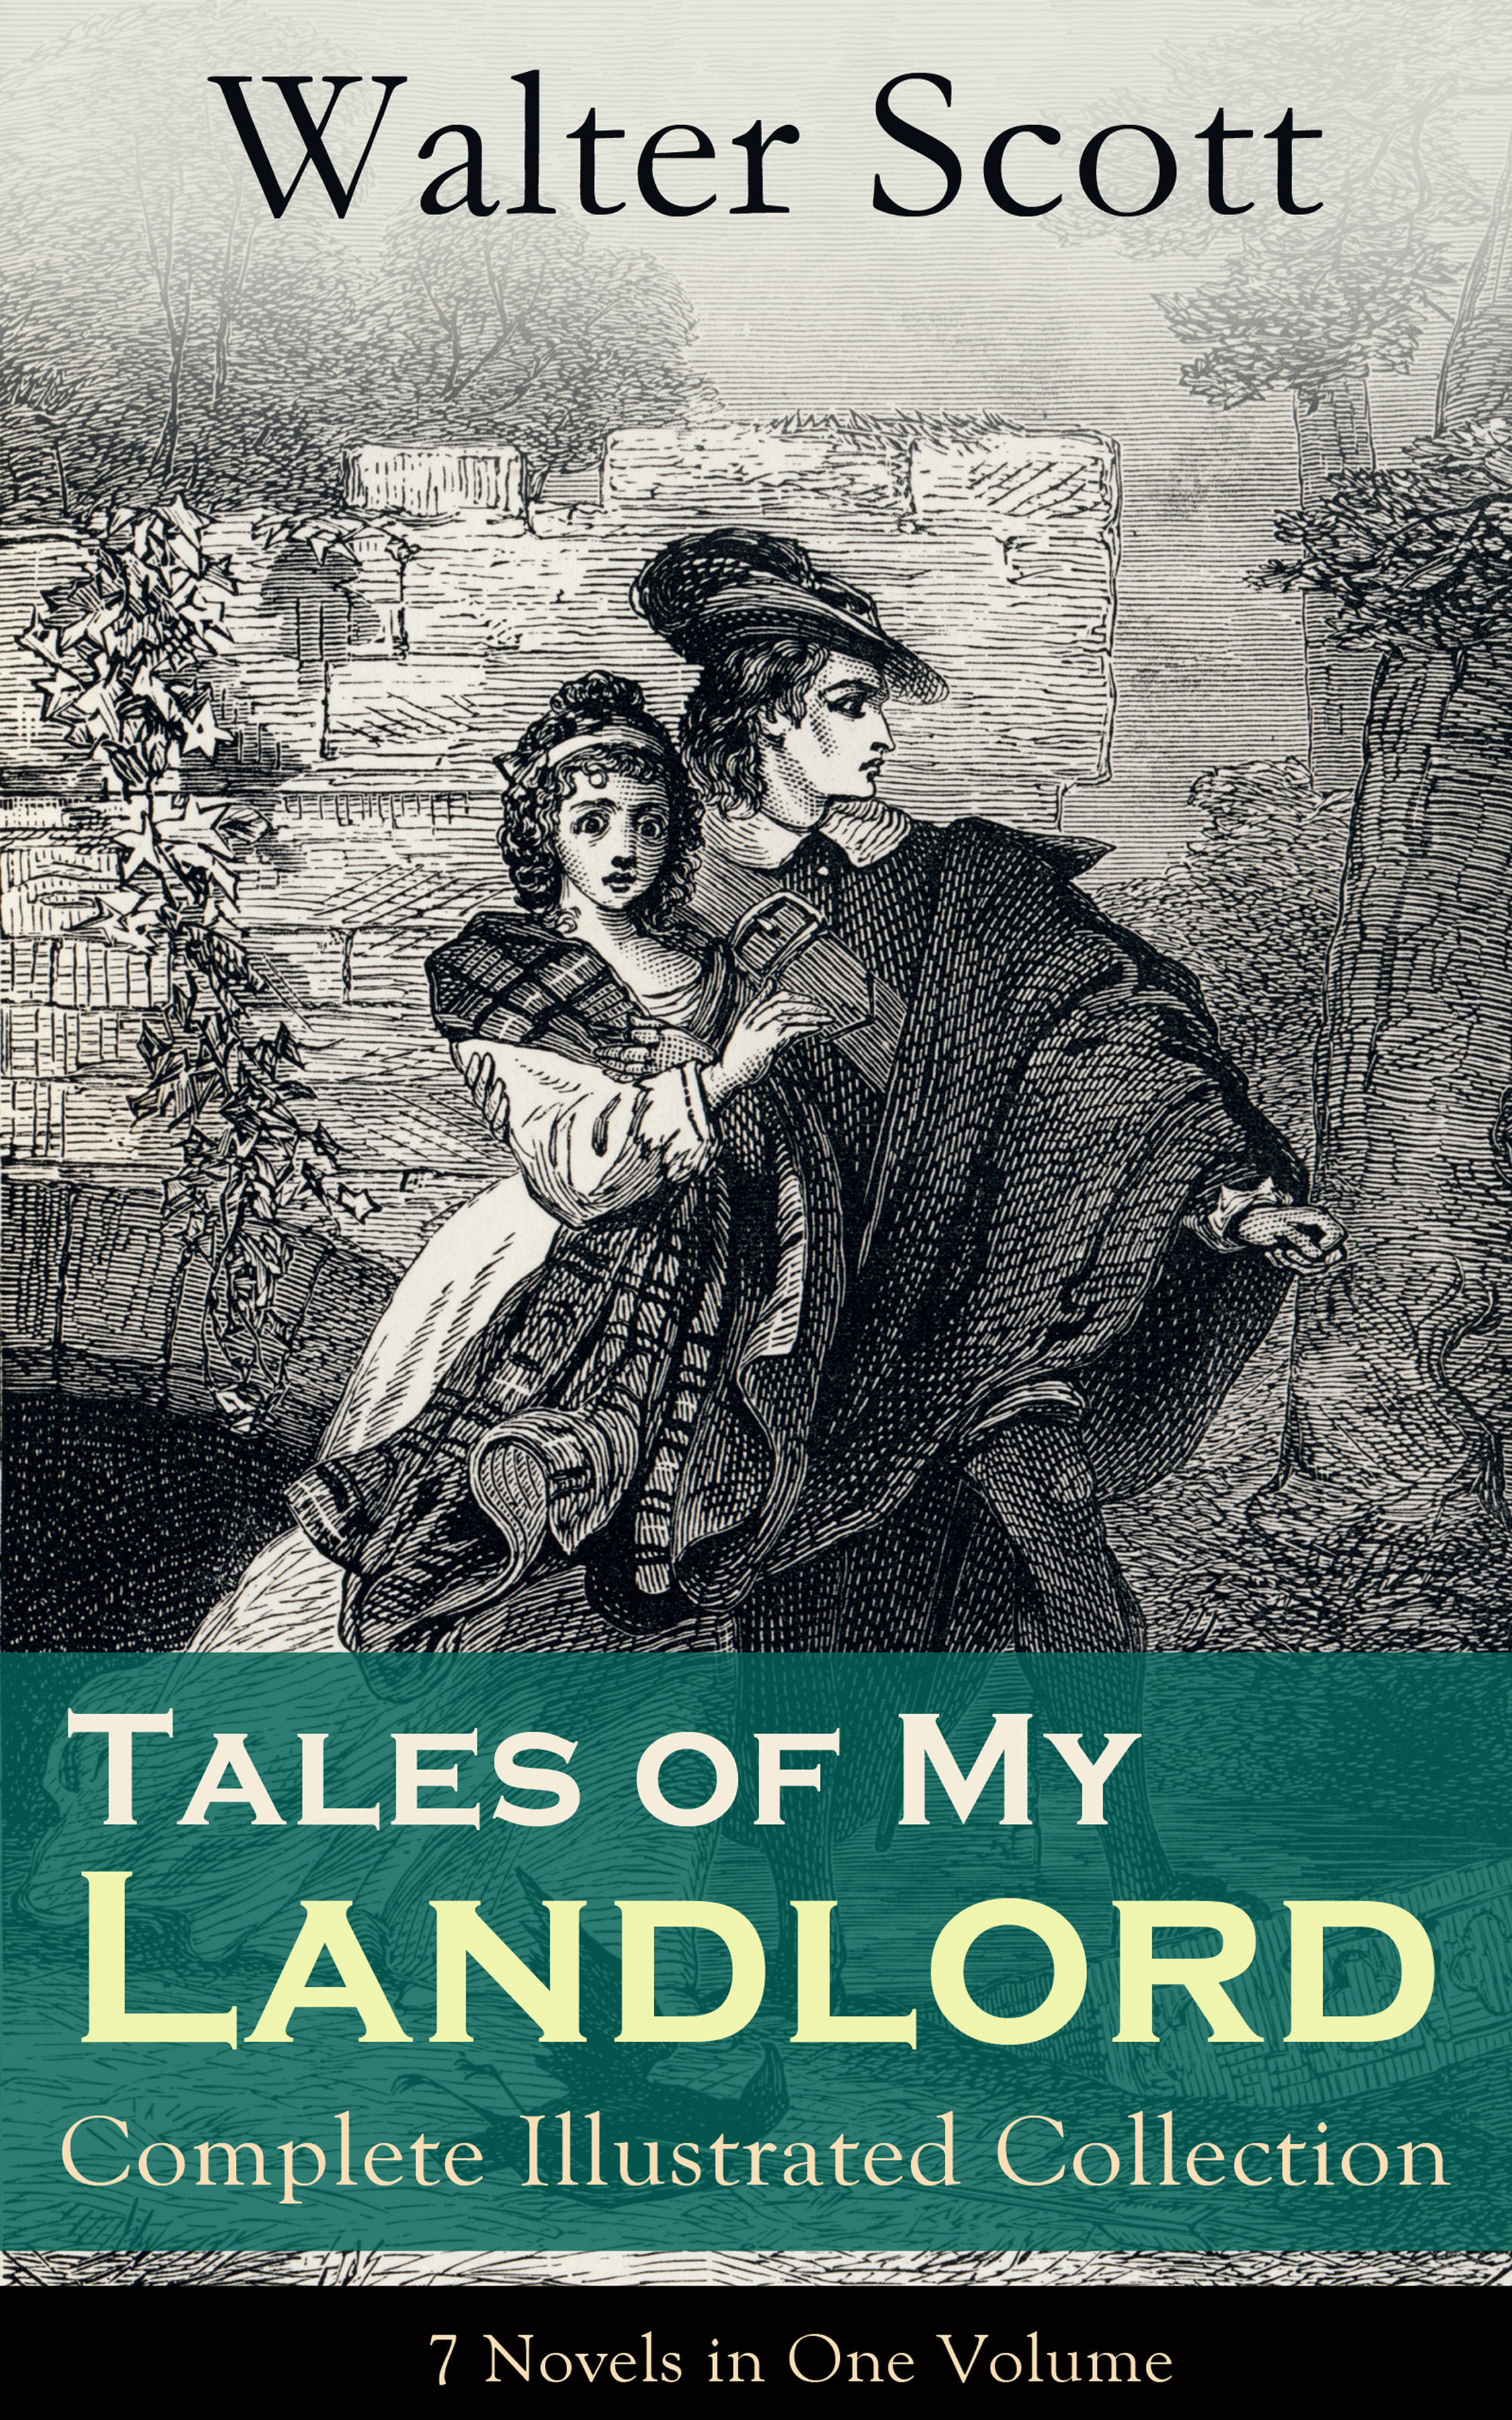 Walter Scott Tales of My Landlord - Complete Illustrated Collection: 7 Novels in One Volume: Old Mortality, Black Dwarf, The Heart of Midlothian, The Bride of Lammermoor, A Legend of Montrose, Count Robert of Paris and Castle Dangerous montrose montrose original album series 5 cd